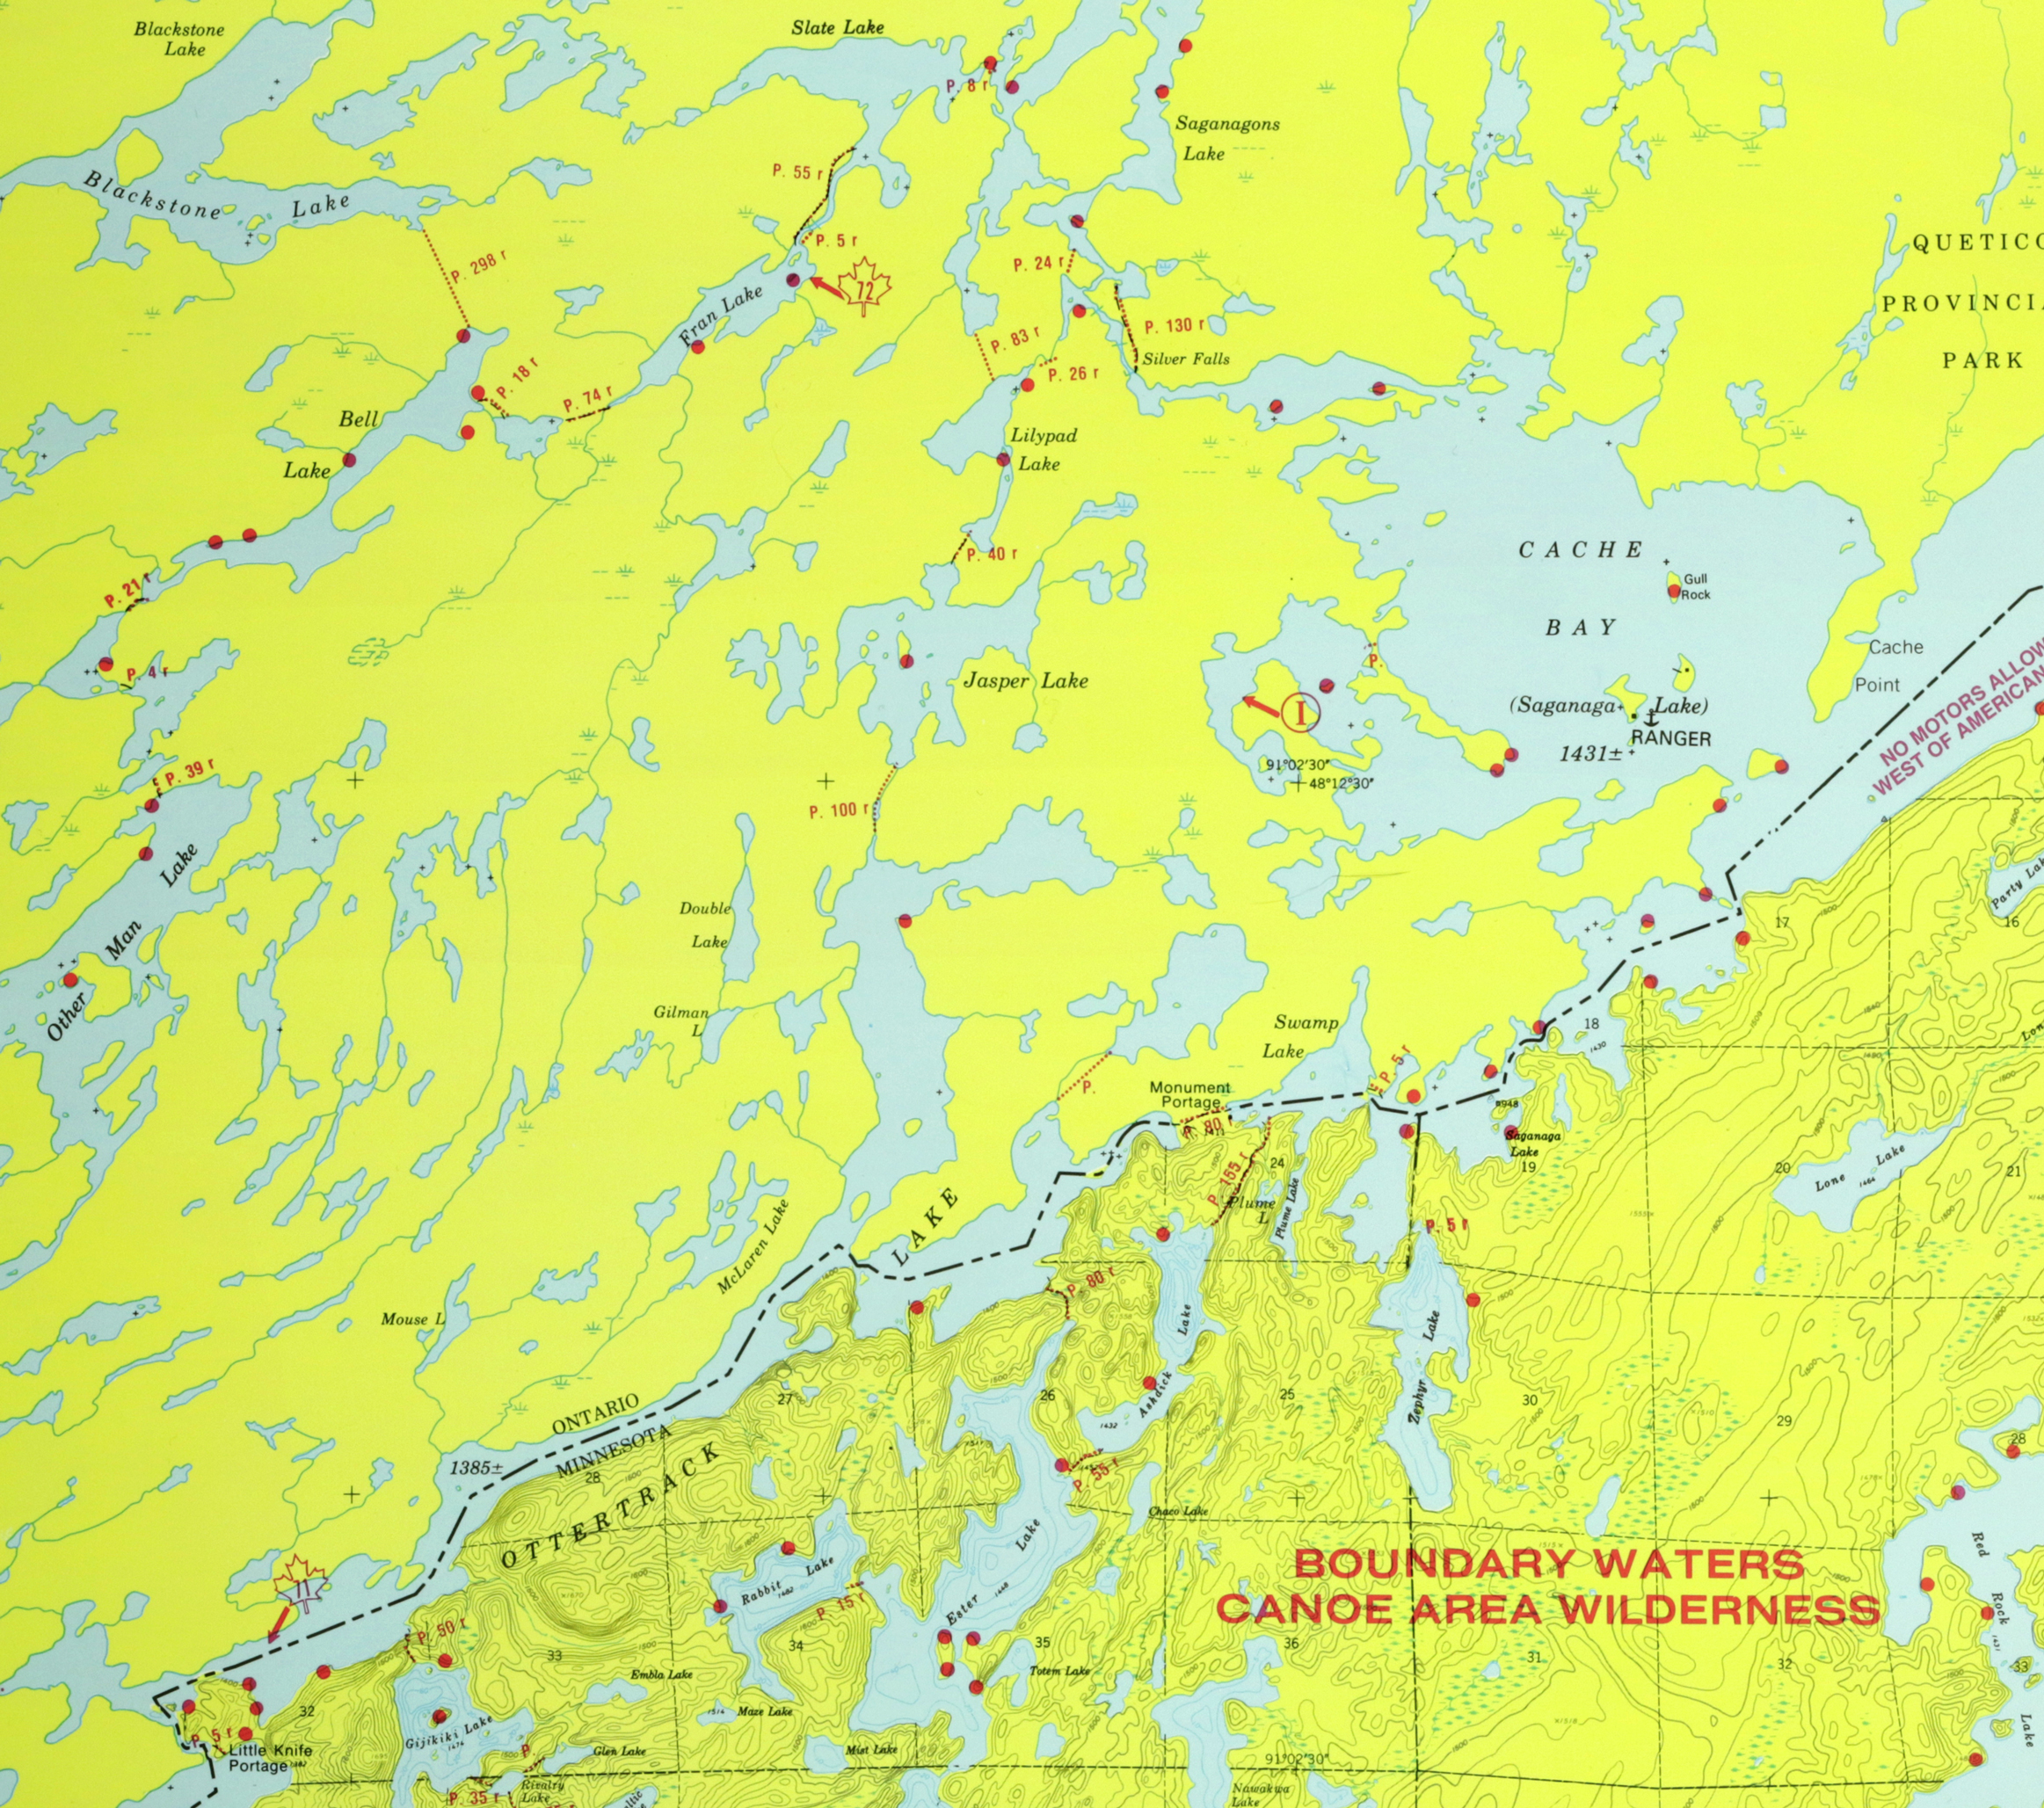 Ottertrack Base Camp Quetico Seagull Canoe Outfitters - Bwca entry point map